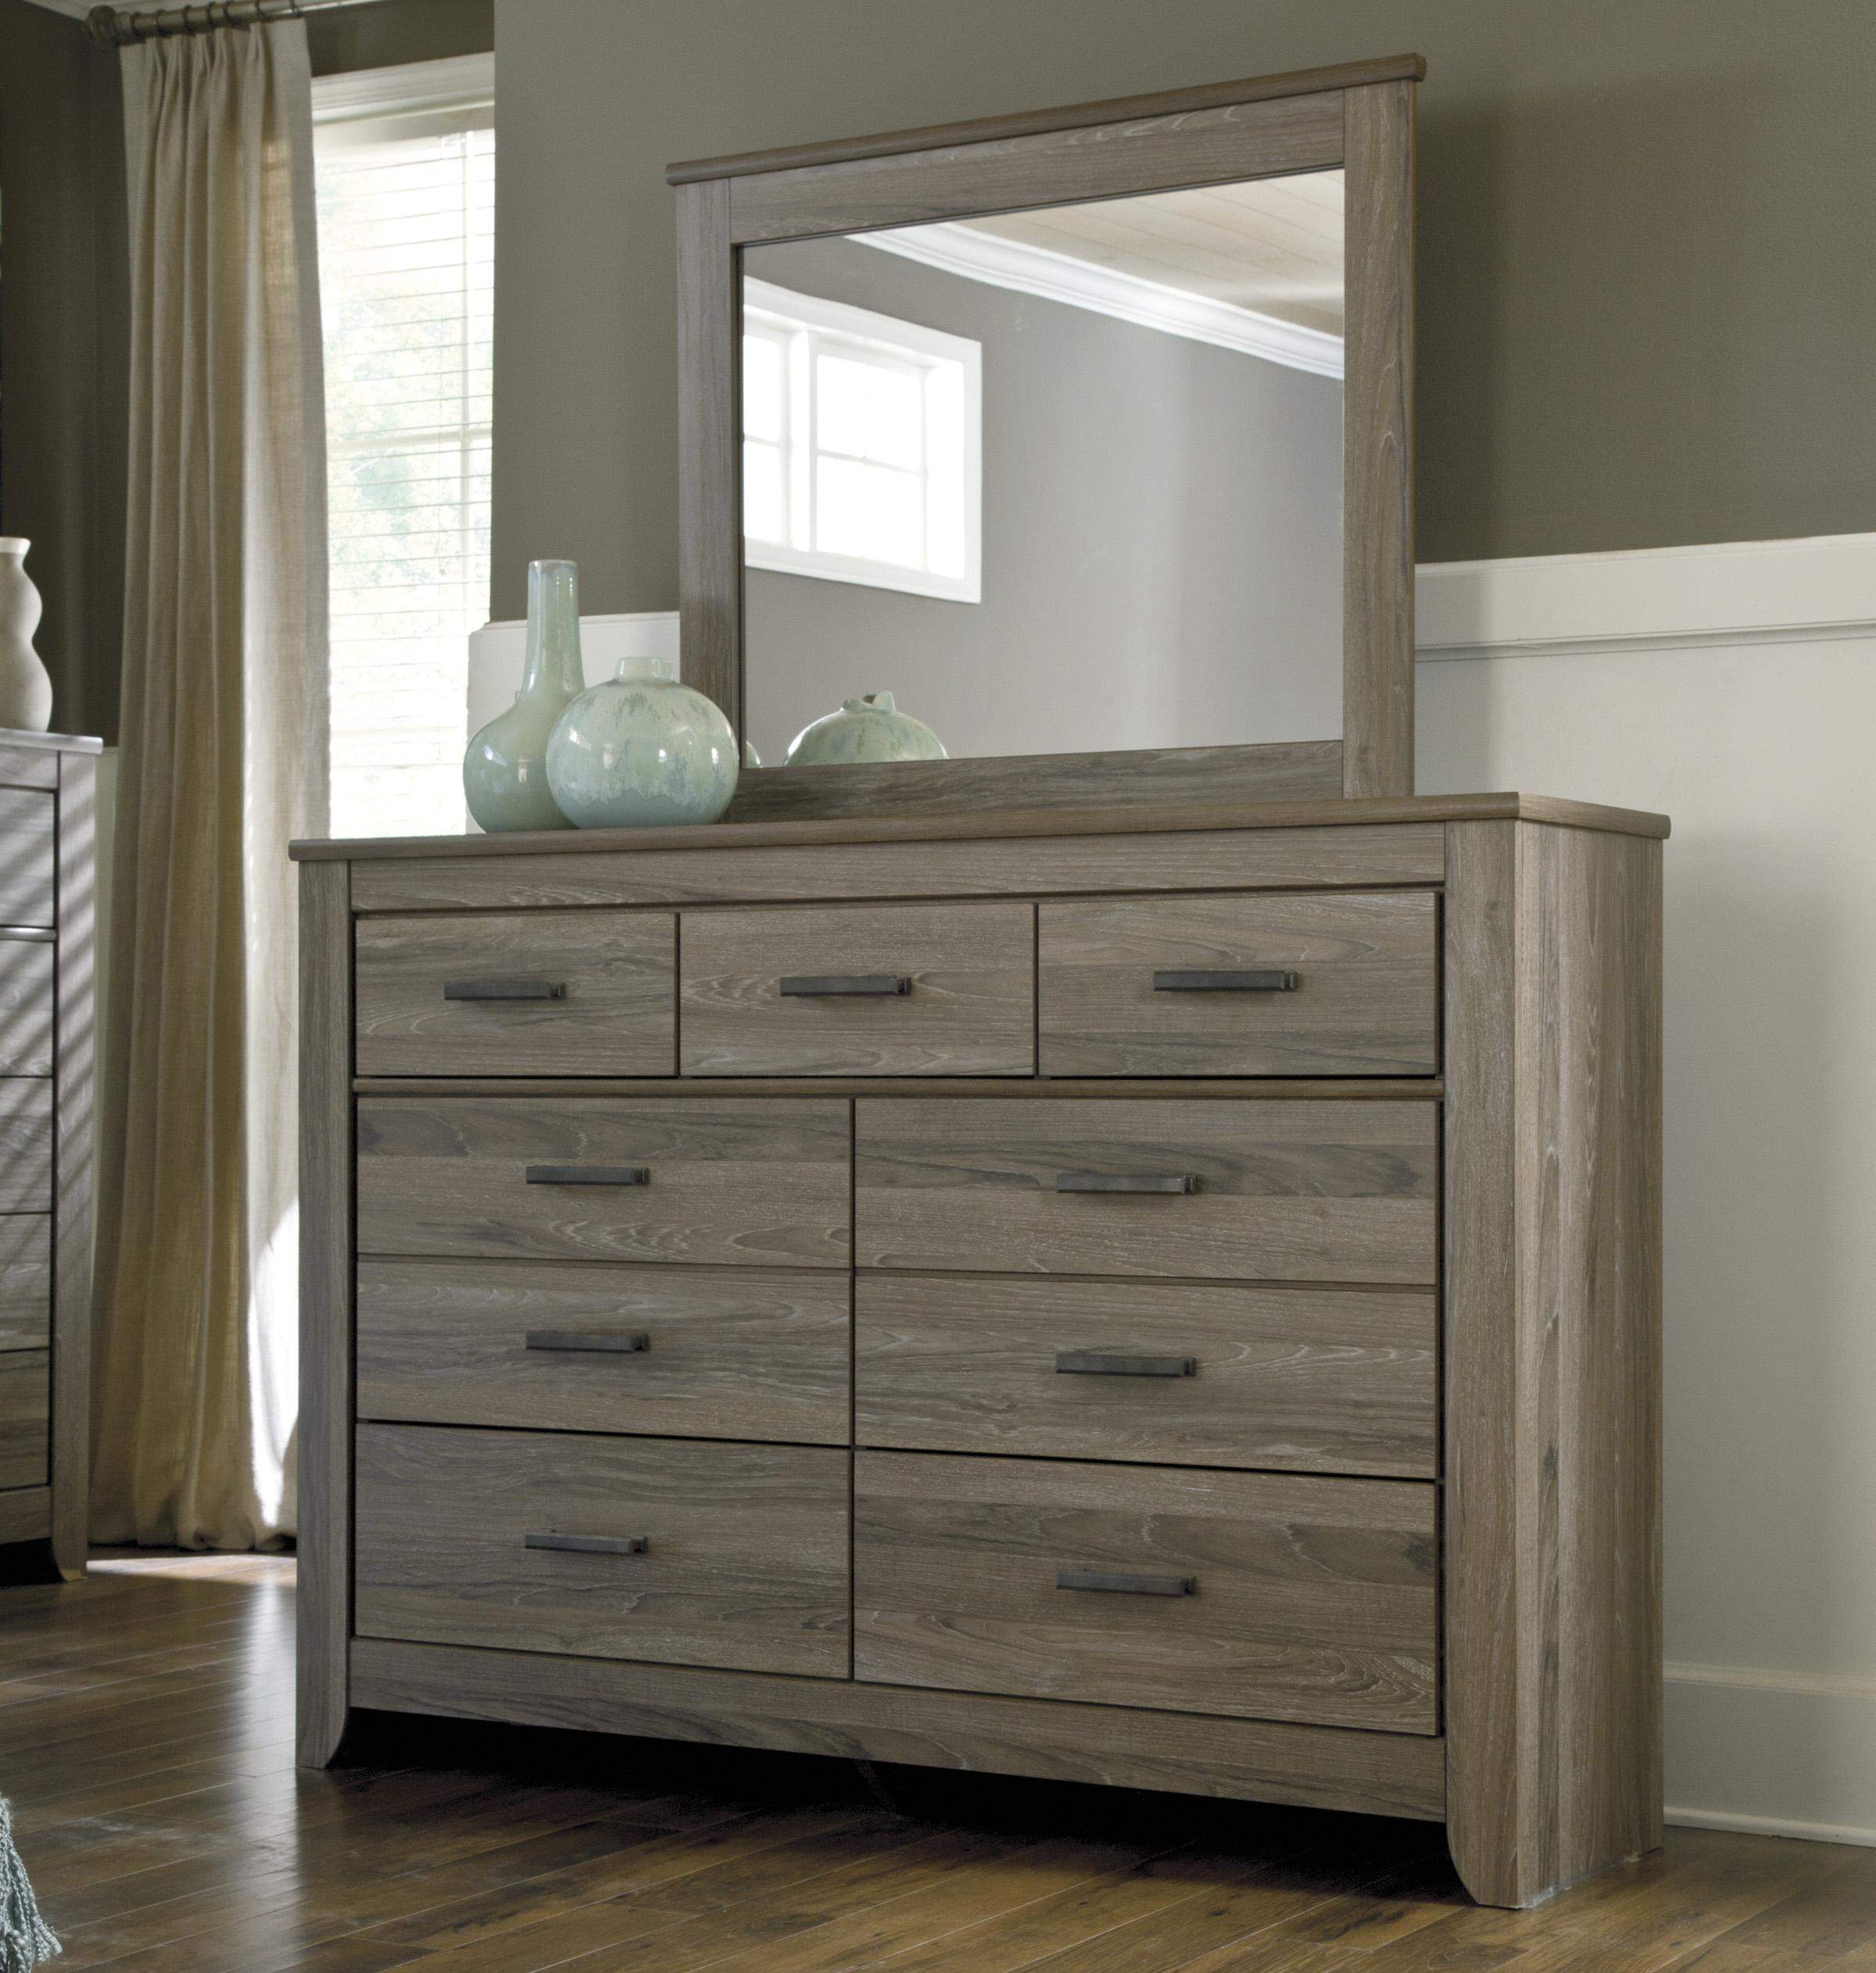 Zelen Dresser & Bedroom Mirror by Signature Design by Ashley at Value City Furniture